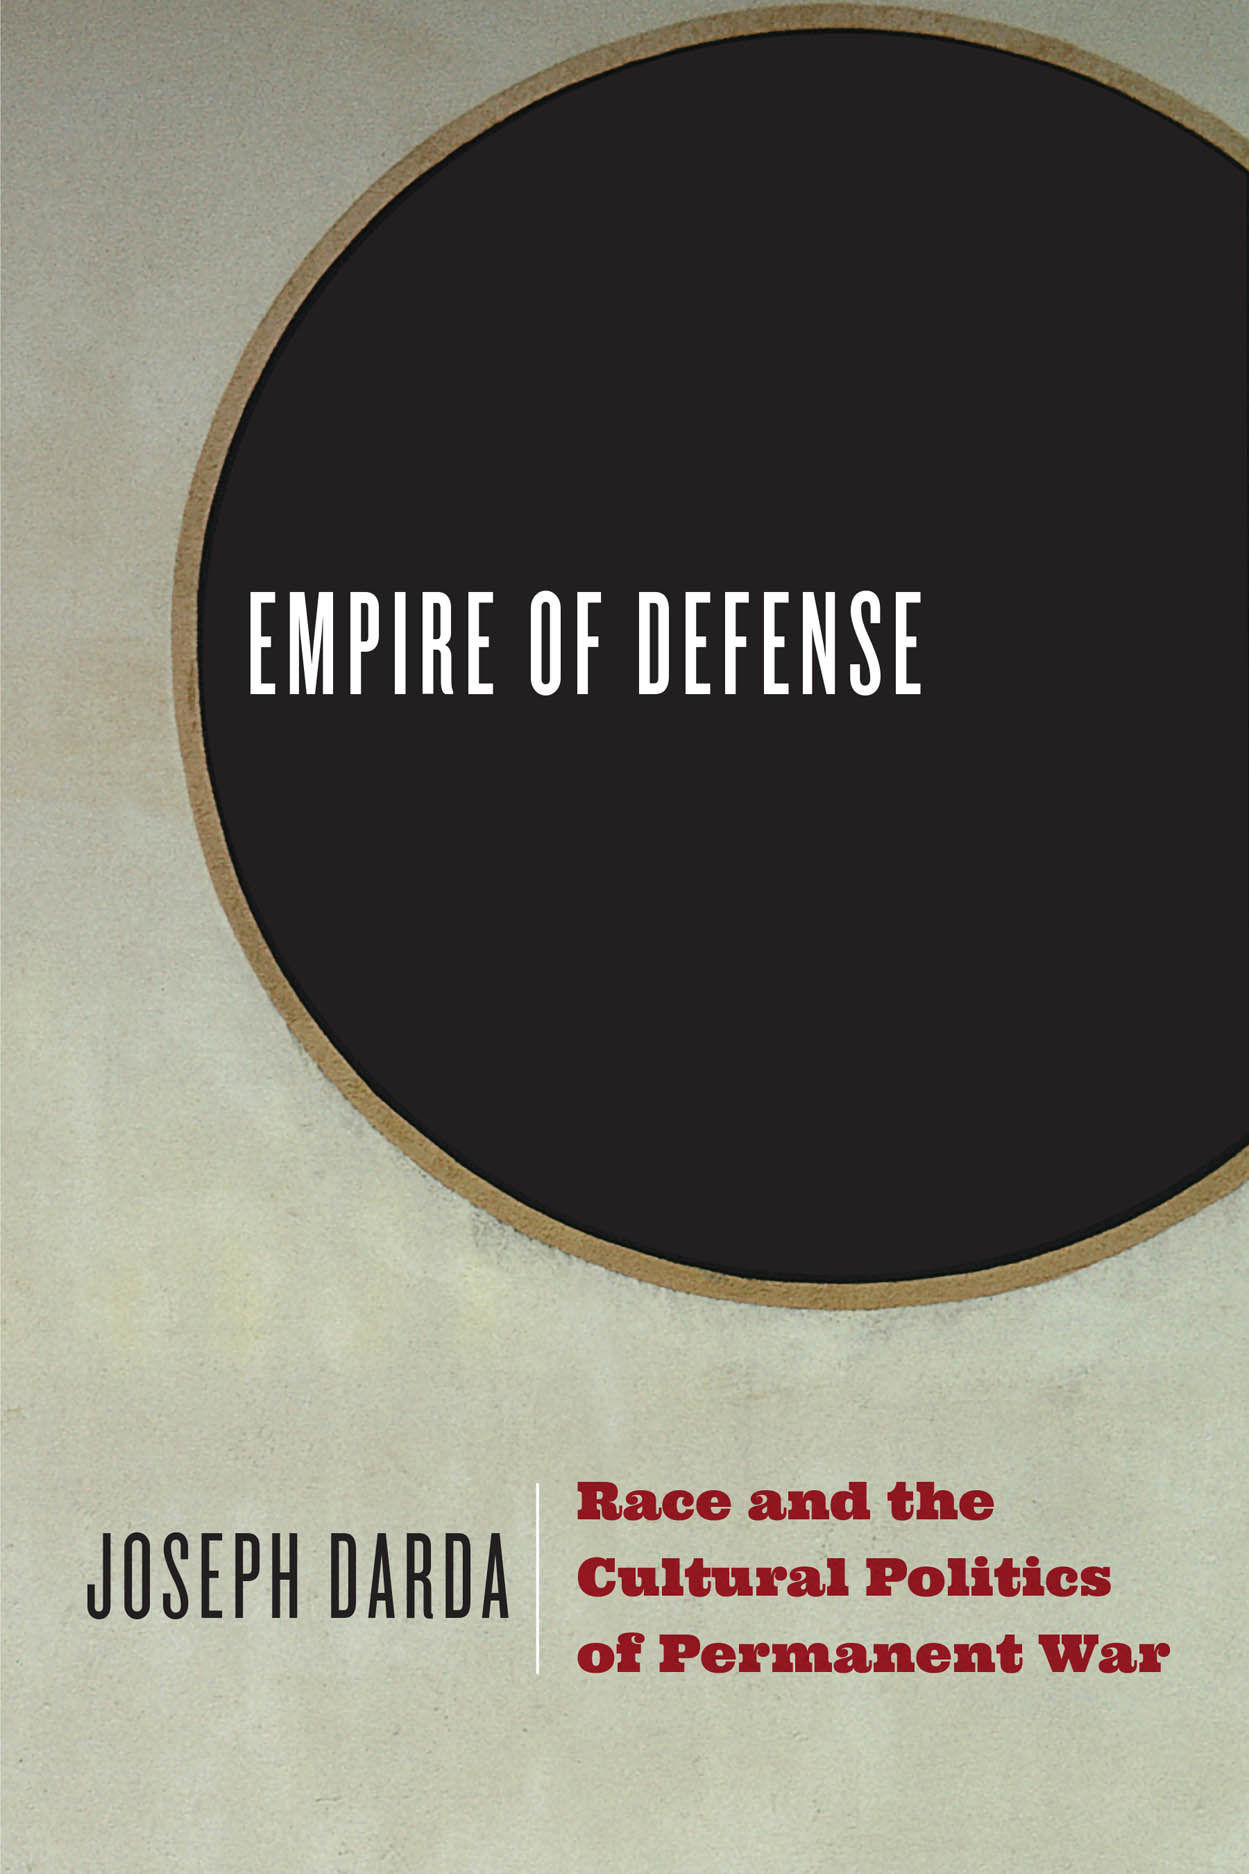 Empire of Defense: Race and the Cultural Politics of Permanent War